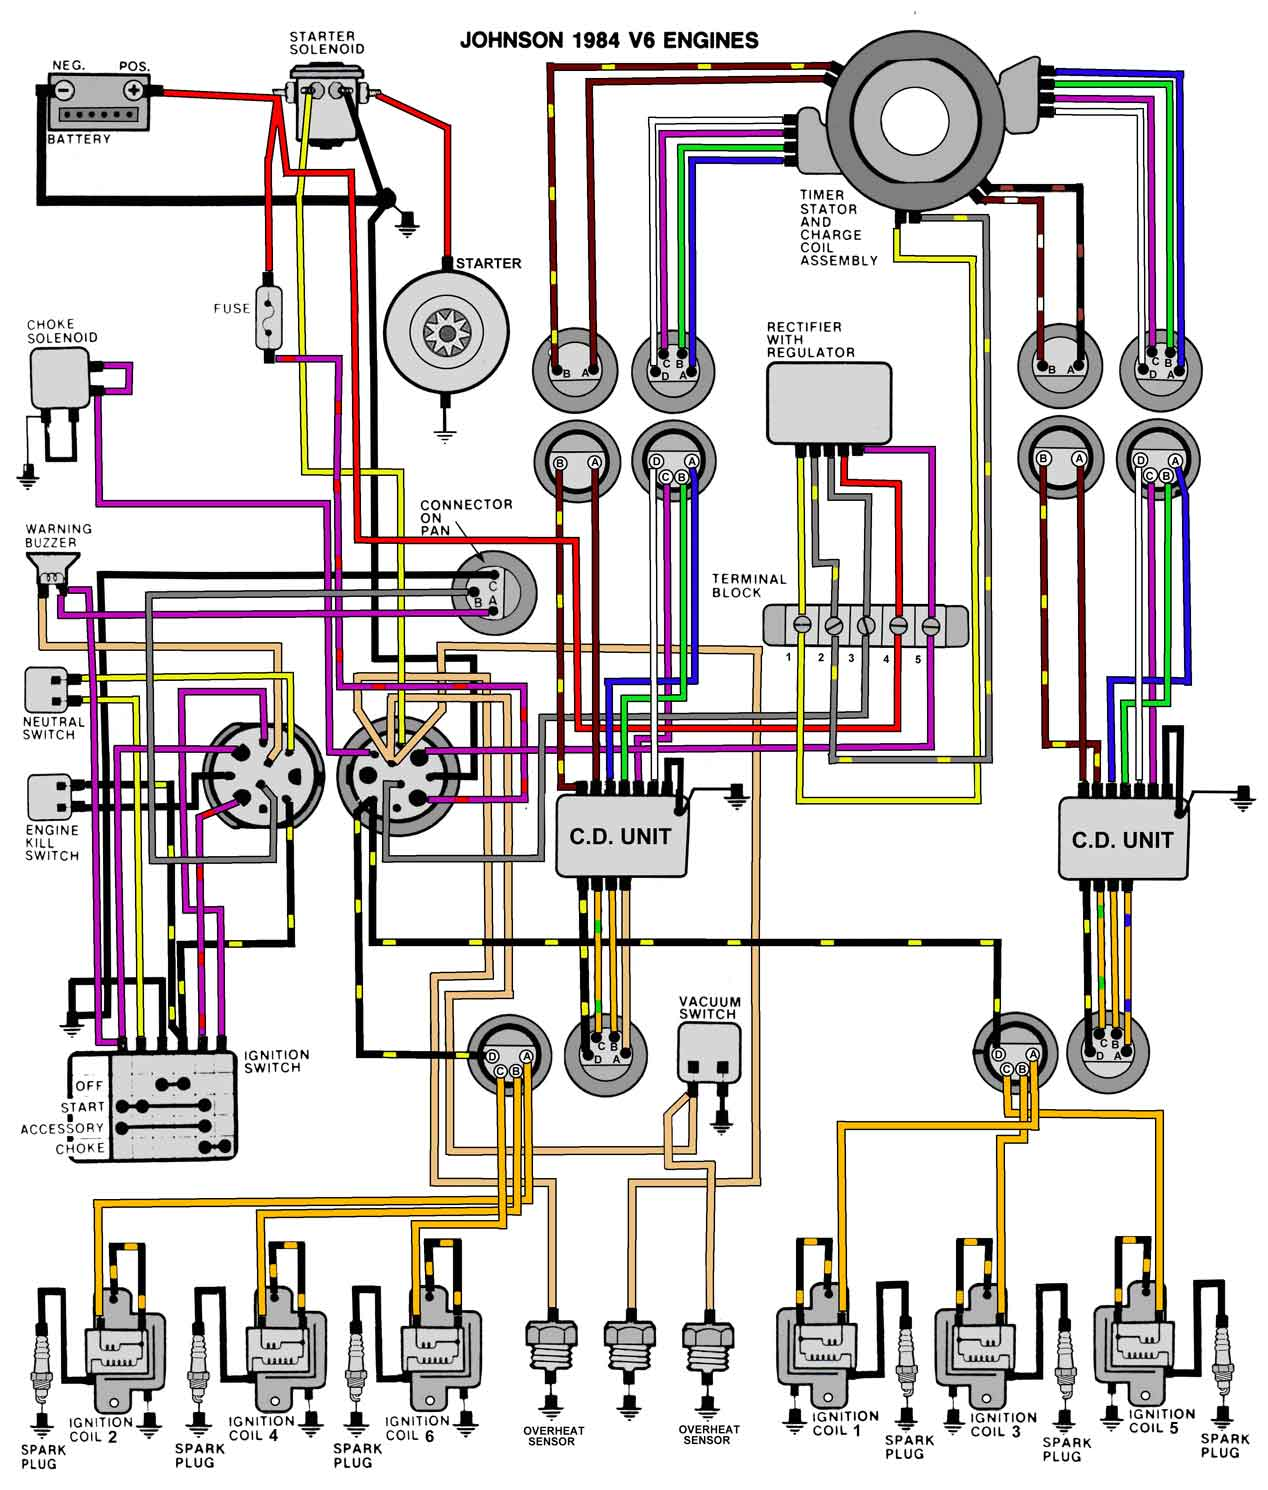 Controll Box Wiring Diagram Johnson Outboard Switch Omc 4201al 100 Hp Diagrams Rh Cad Fds Co Uk